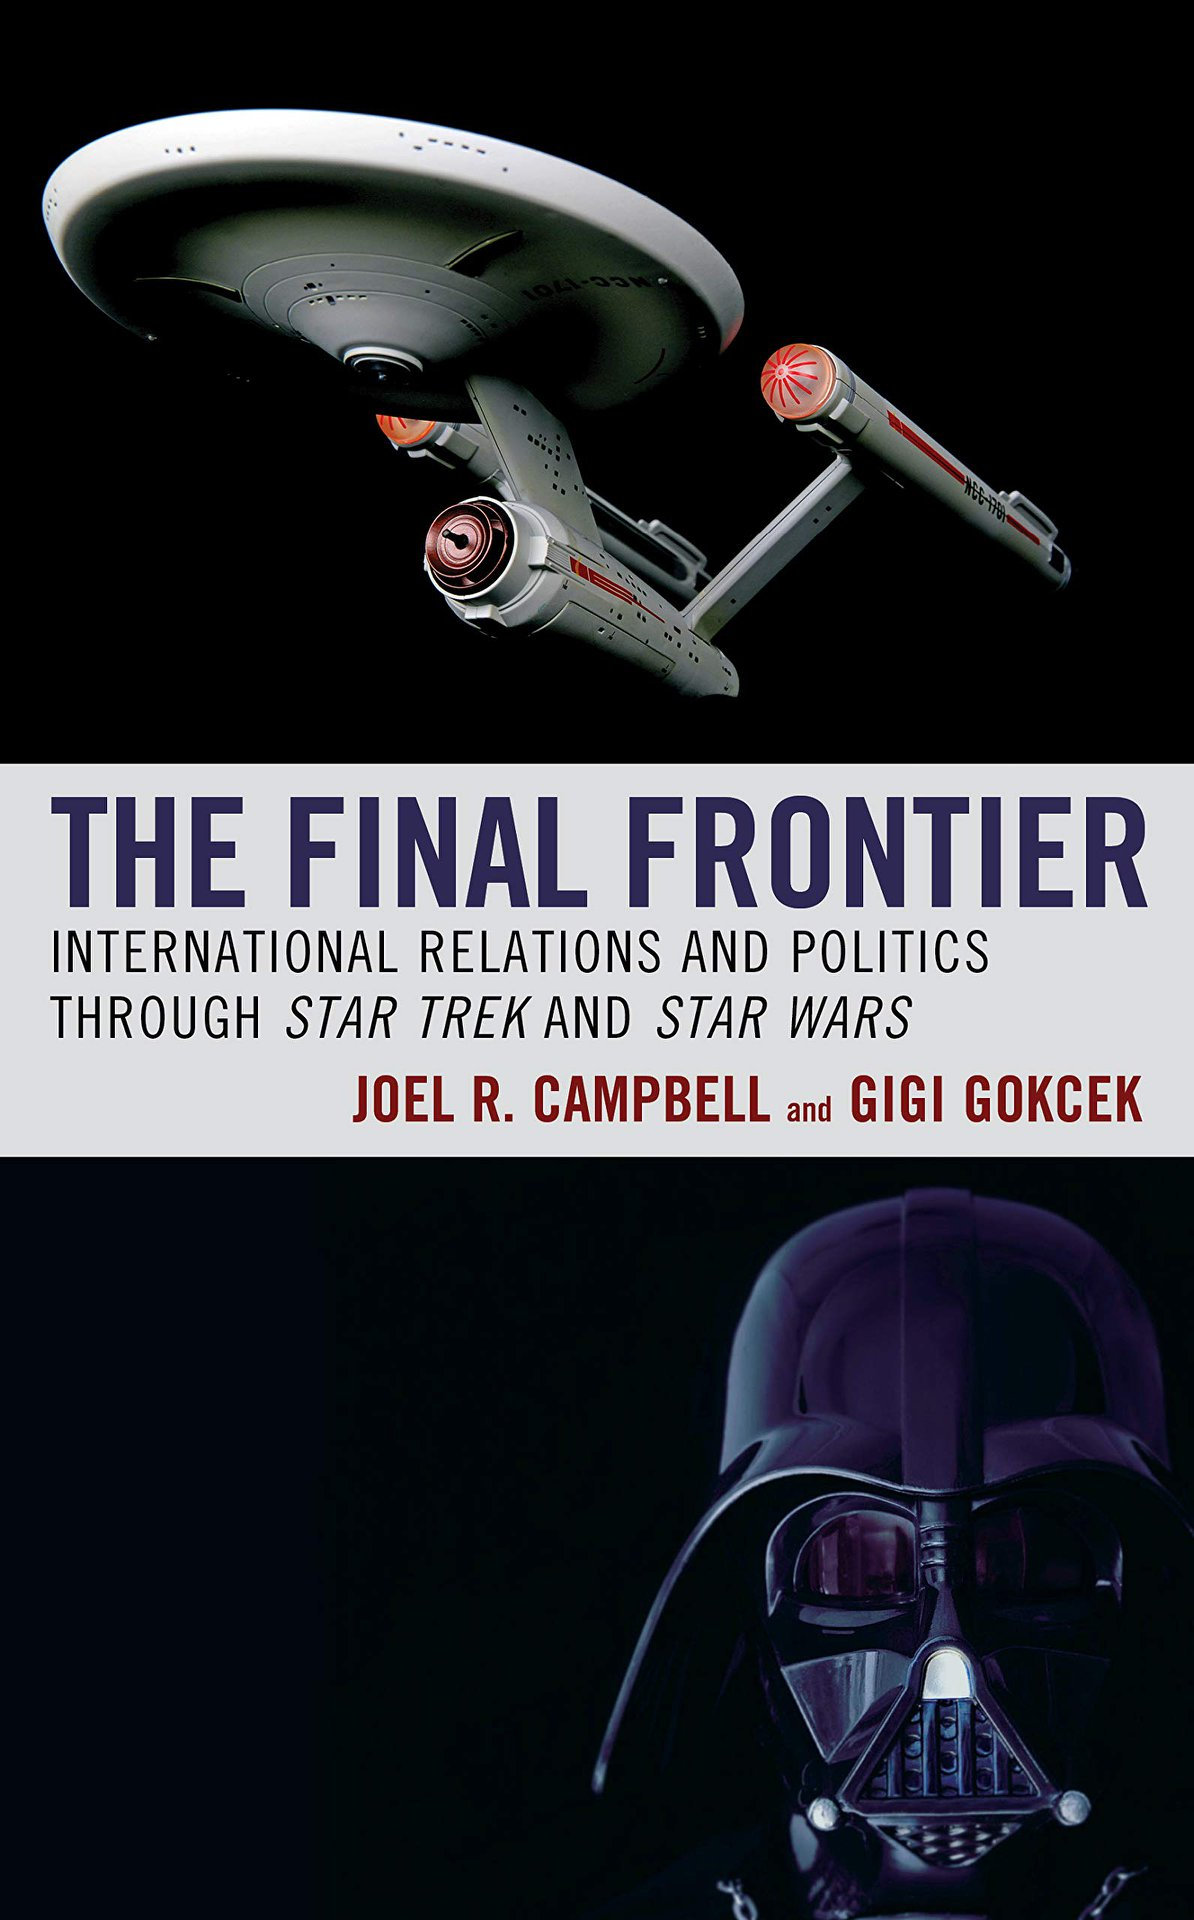 The Final Frontier: International Relations and Politics Through Star Trek and Star Wars